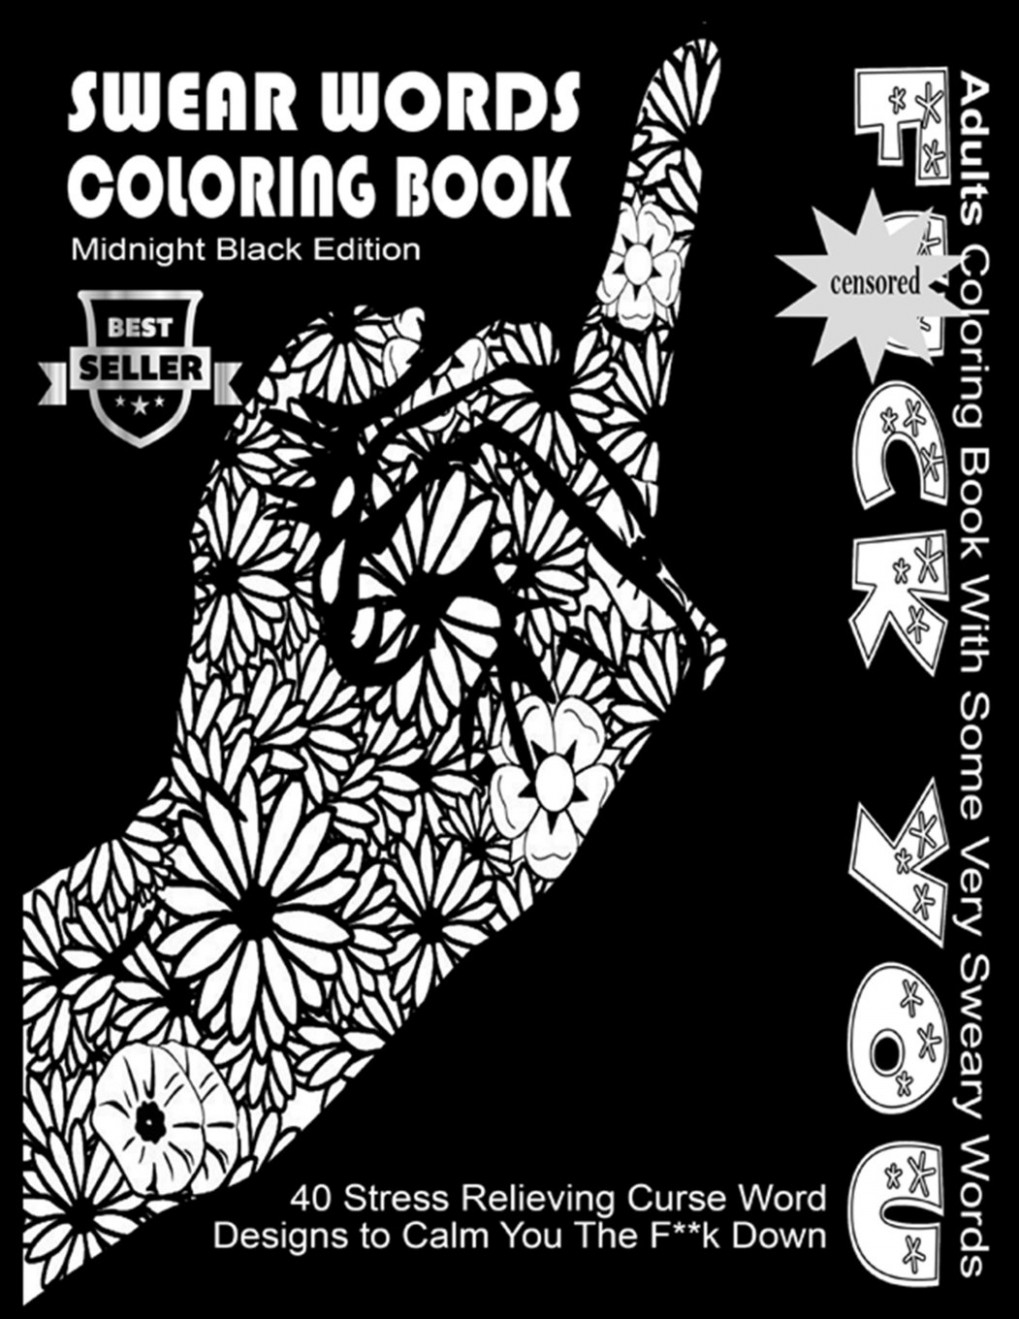 Amazon.com: Swear Word Coloring Book : Midnight Black Edition Best ..